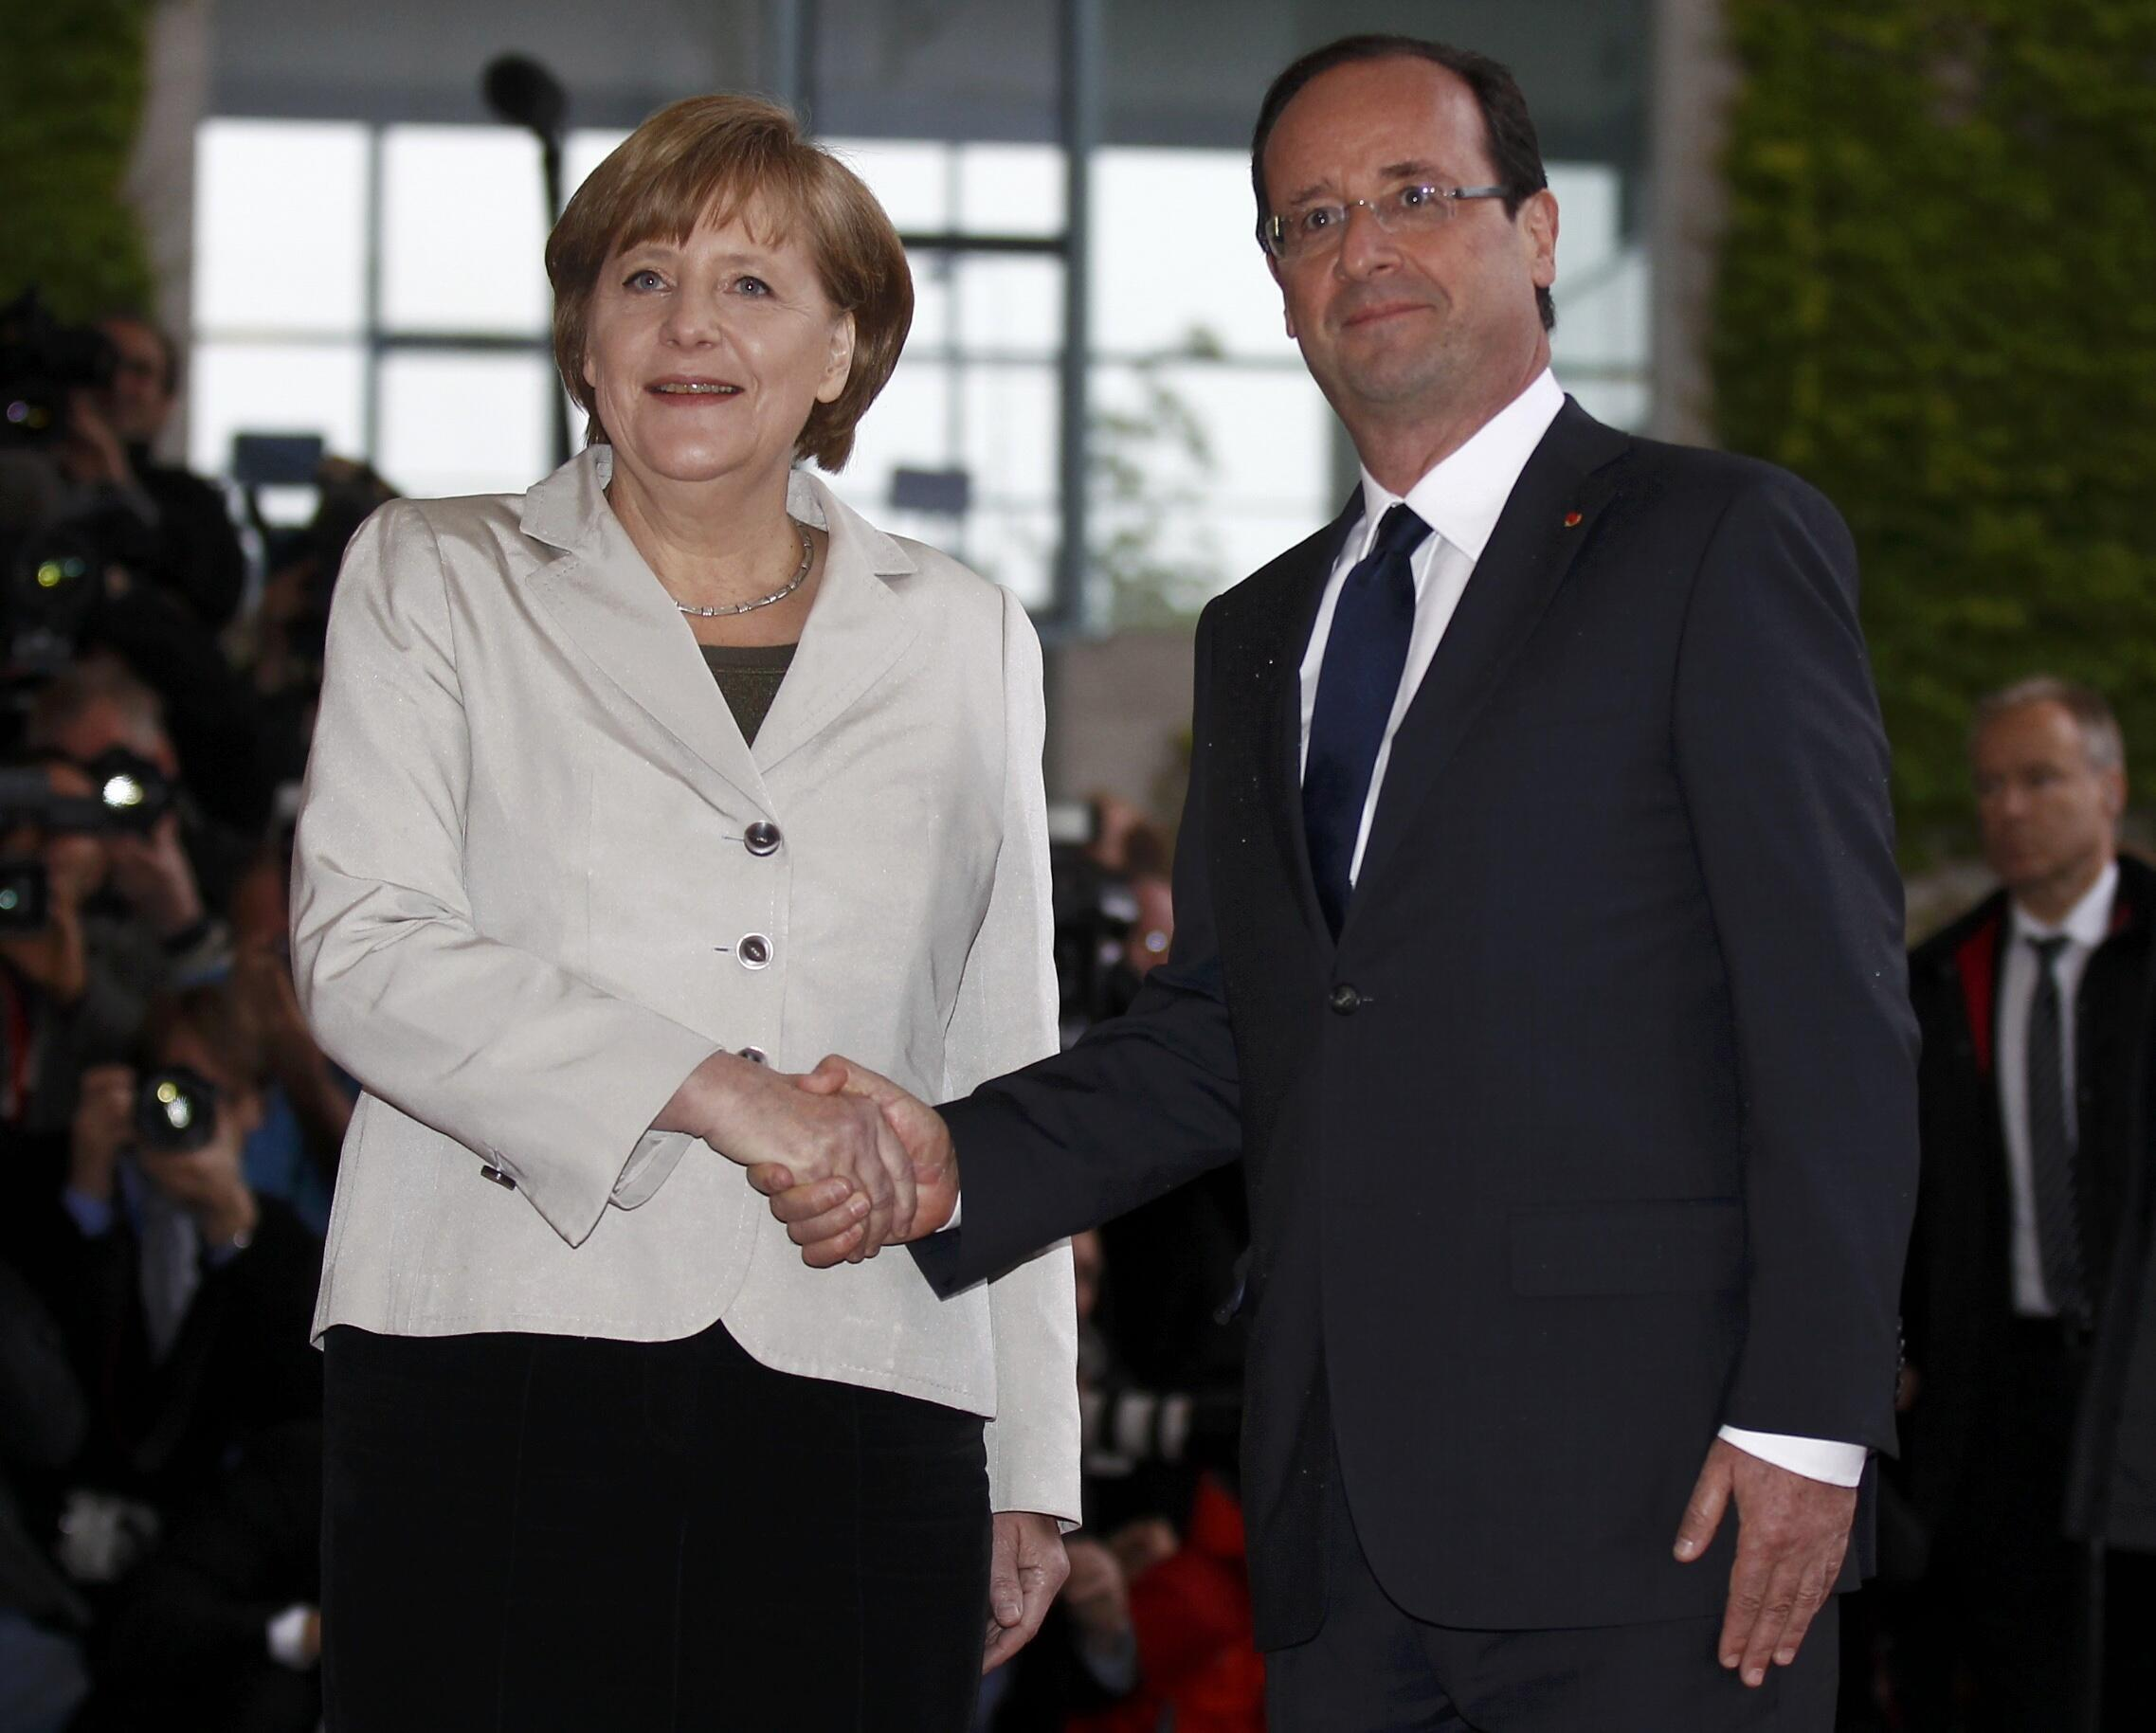 Germany's Angela Merkel (L) agrees with France's François Hollande (R) on the transactions tax but not on eurobonds